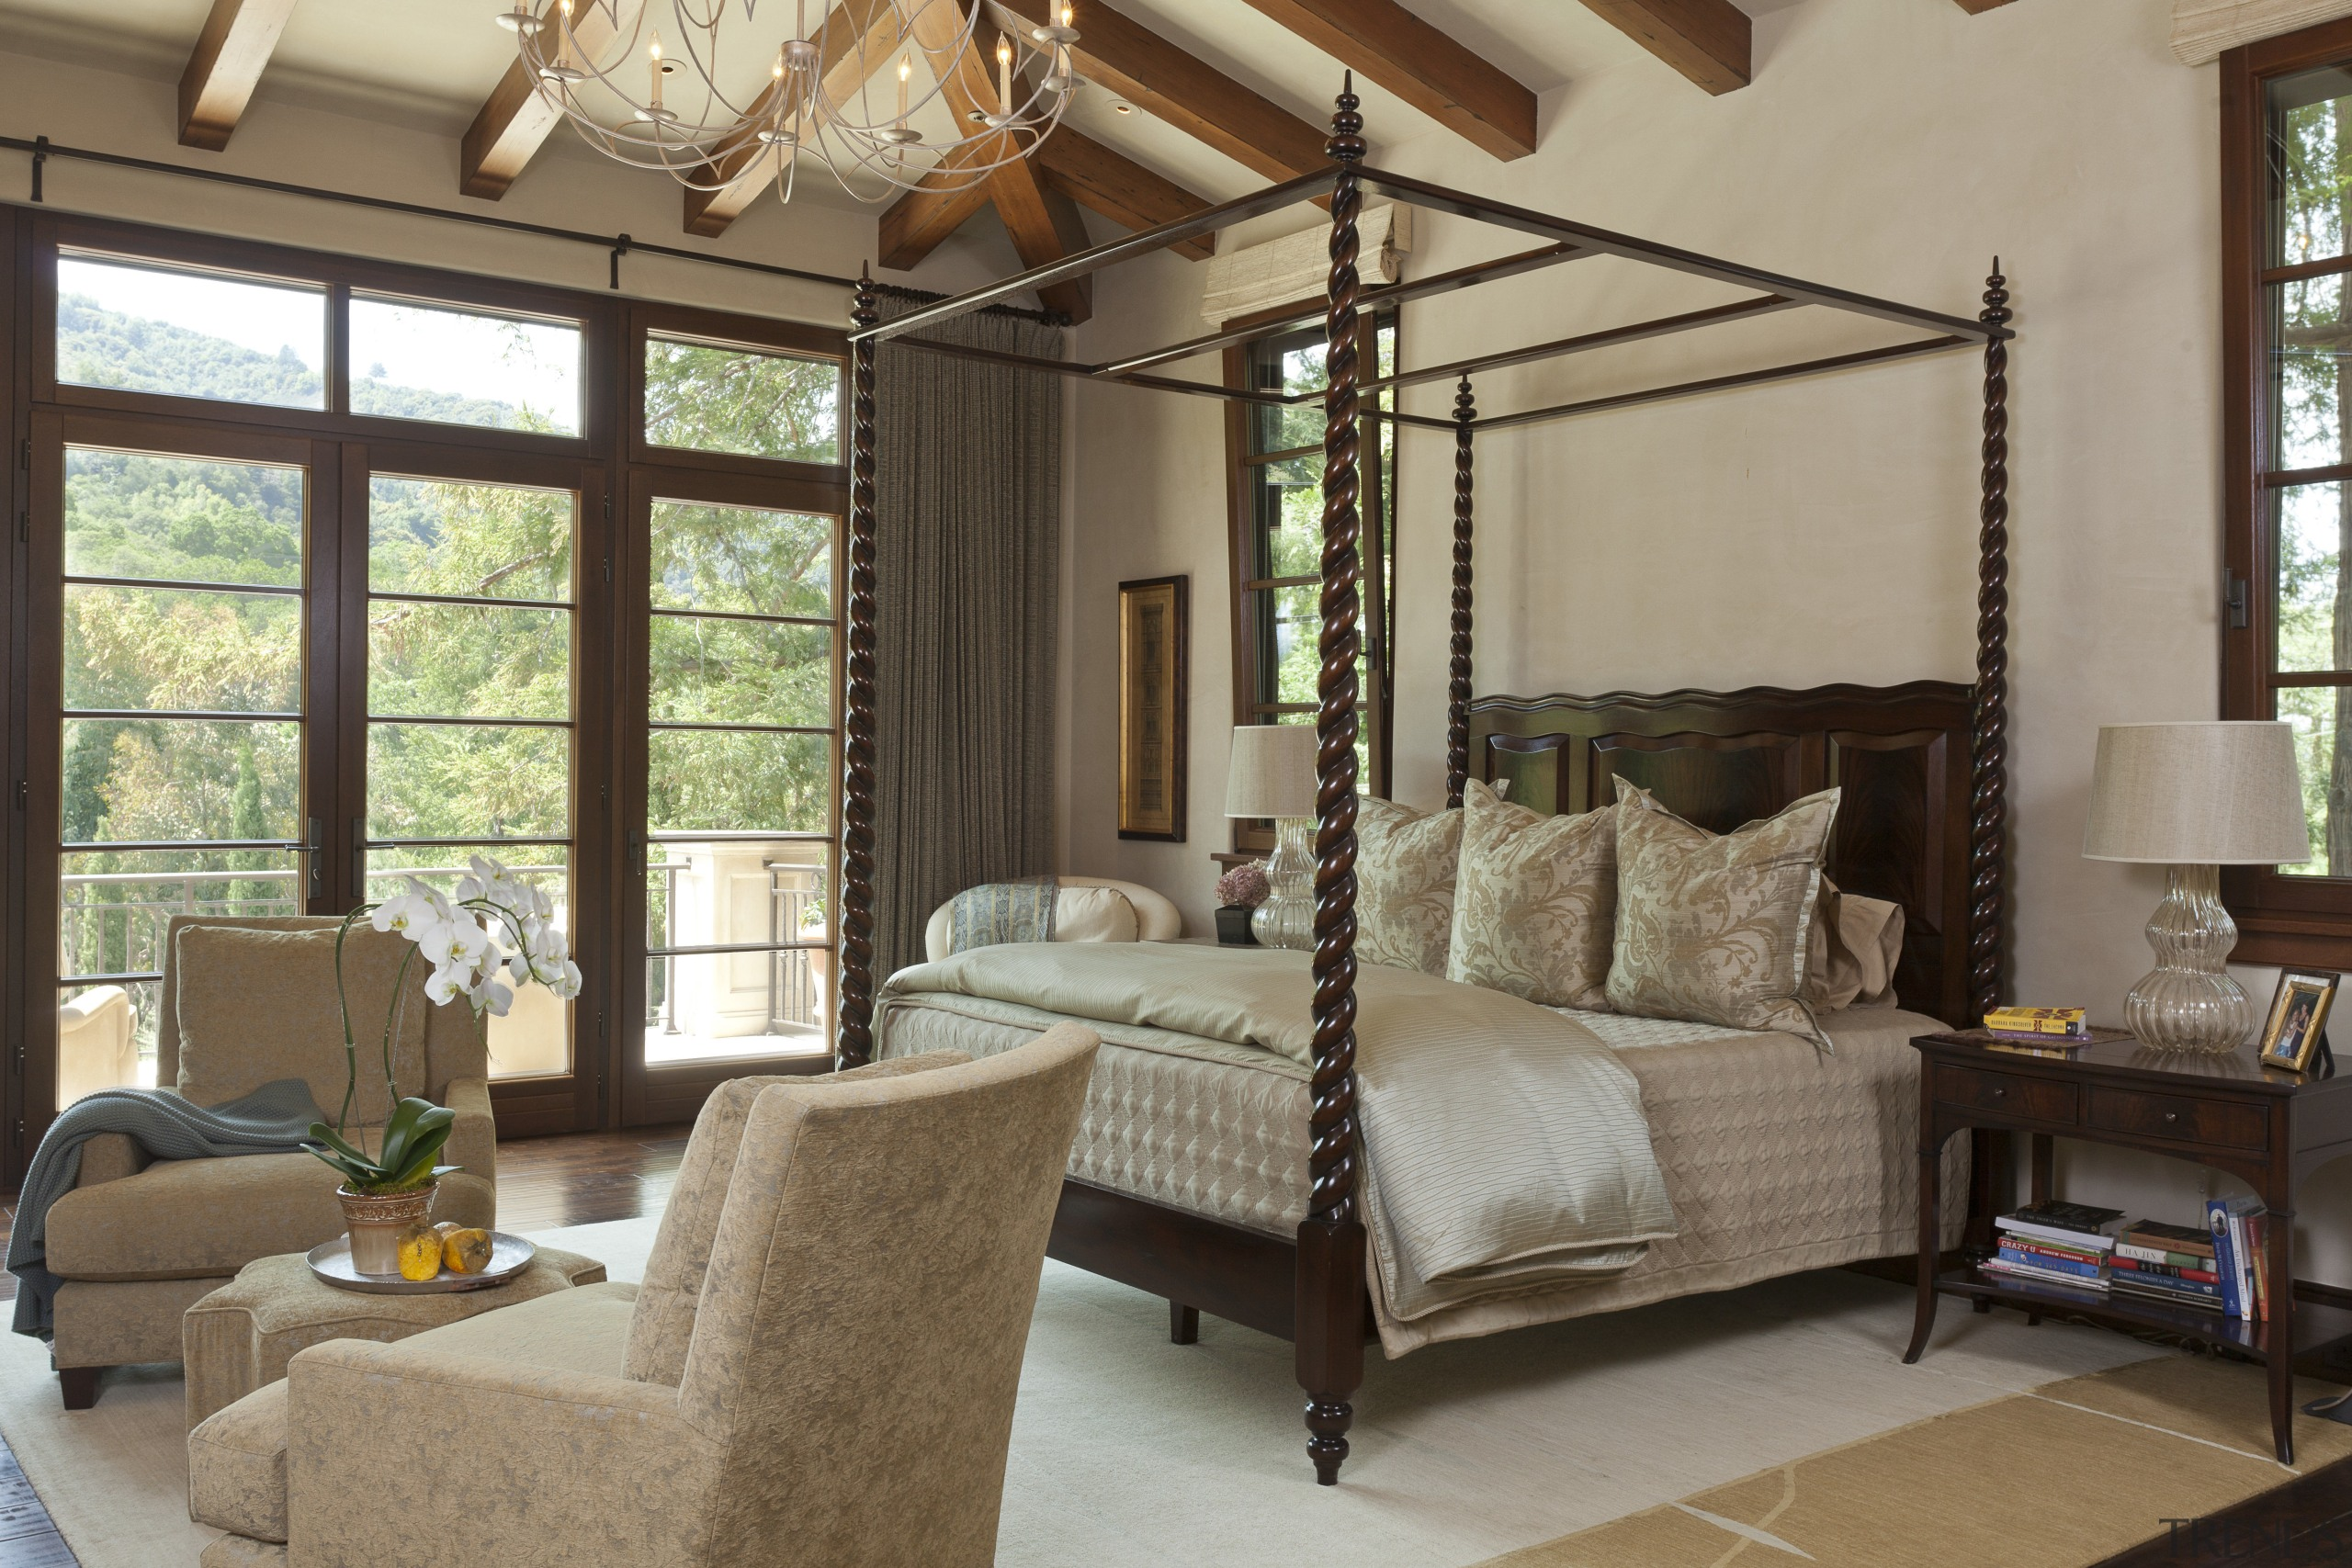 The master bedroom in this Mediterranean Californian home ceiling, estate, furniture, home, interior design, living room, real estate, room, window, window treatment, brown